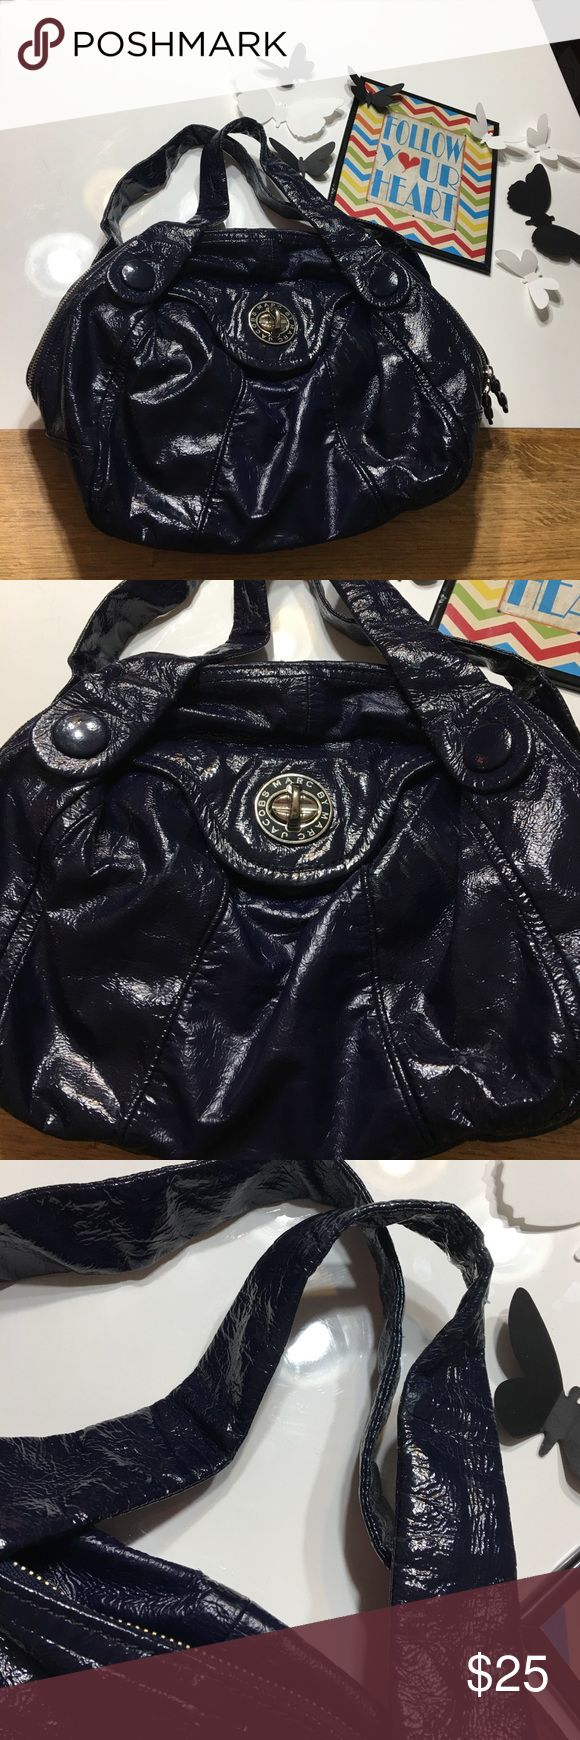 """Authentic Marc by Marc Jacobs handbag purse Authentic Marc by Marc Jacobs coated leather handbag purse. The coating on the leather is peeling in various areas- almost completely on the bottom of the bag. Not too bag but if you choose to peel it off completely (not necessary but if you choose to- it's a nice blue leather underneath. Measures 16"""" long 13"""" tall 8"""" wide strap drop 8"""" SOLD AS IS FINAL LOW SALE PRICE LISTED PLEASE NO OFFERS Marc by Marc Jacobs Bags Shoulder Bags"""